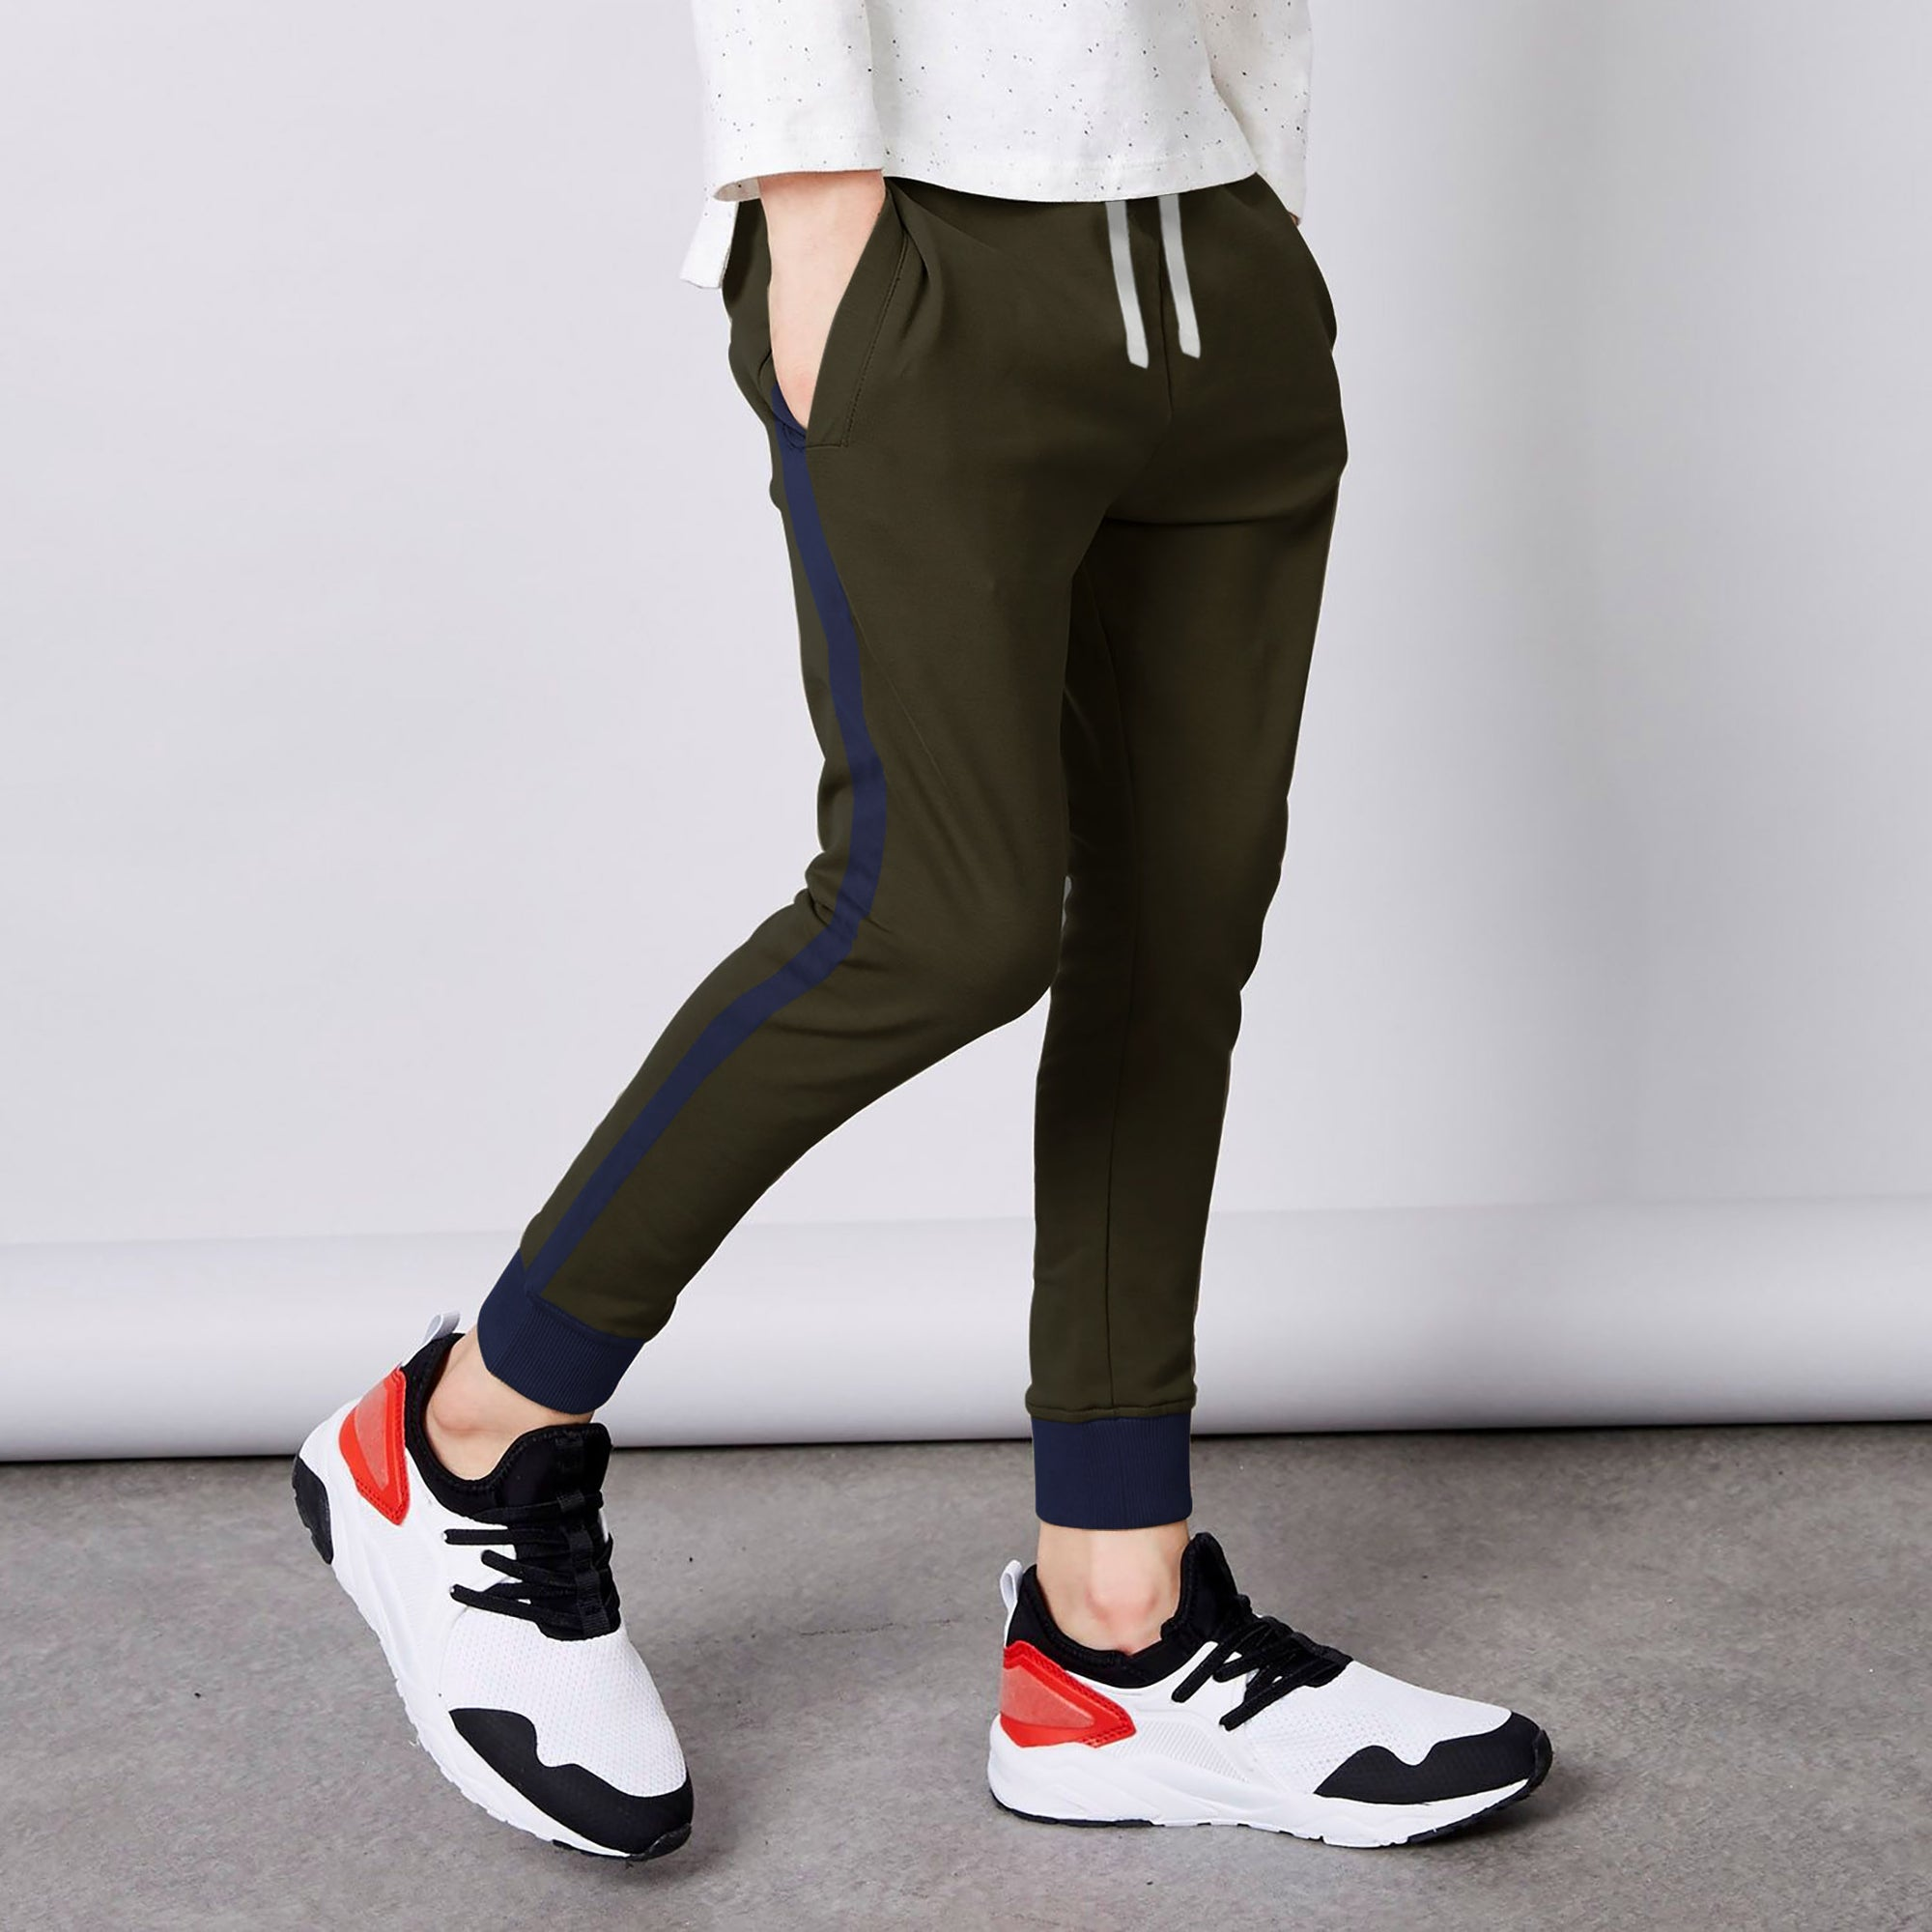 brandsego - New Look Single Jersey Jogger Trouser For Kids-Dark Olive & Navy-BE5224